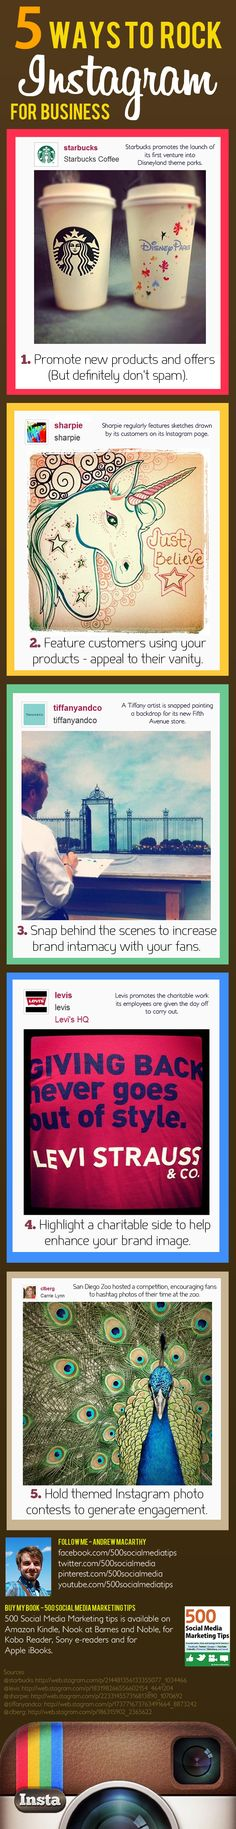 5 ways to rock #Instagram for business #infographic